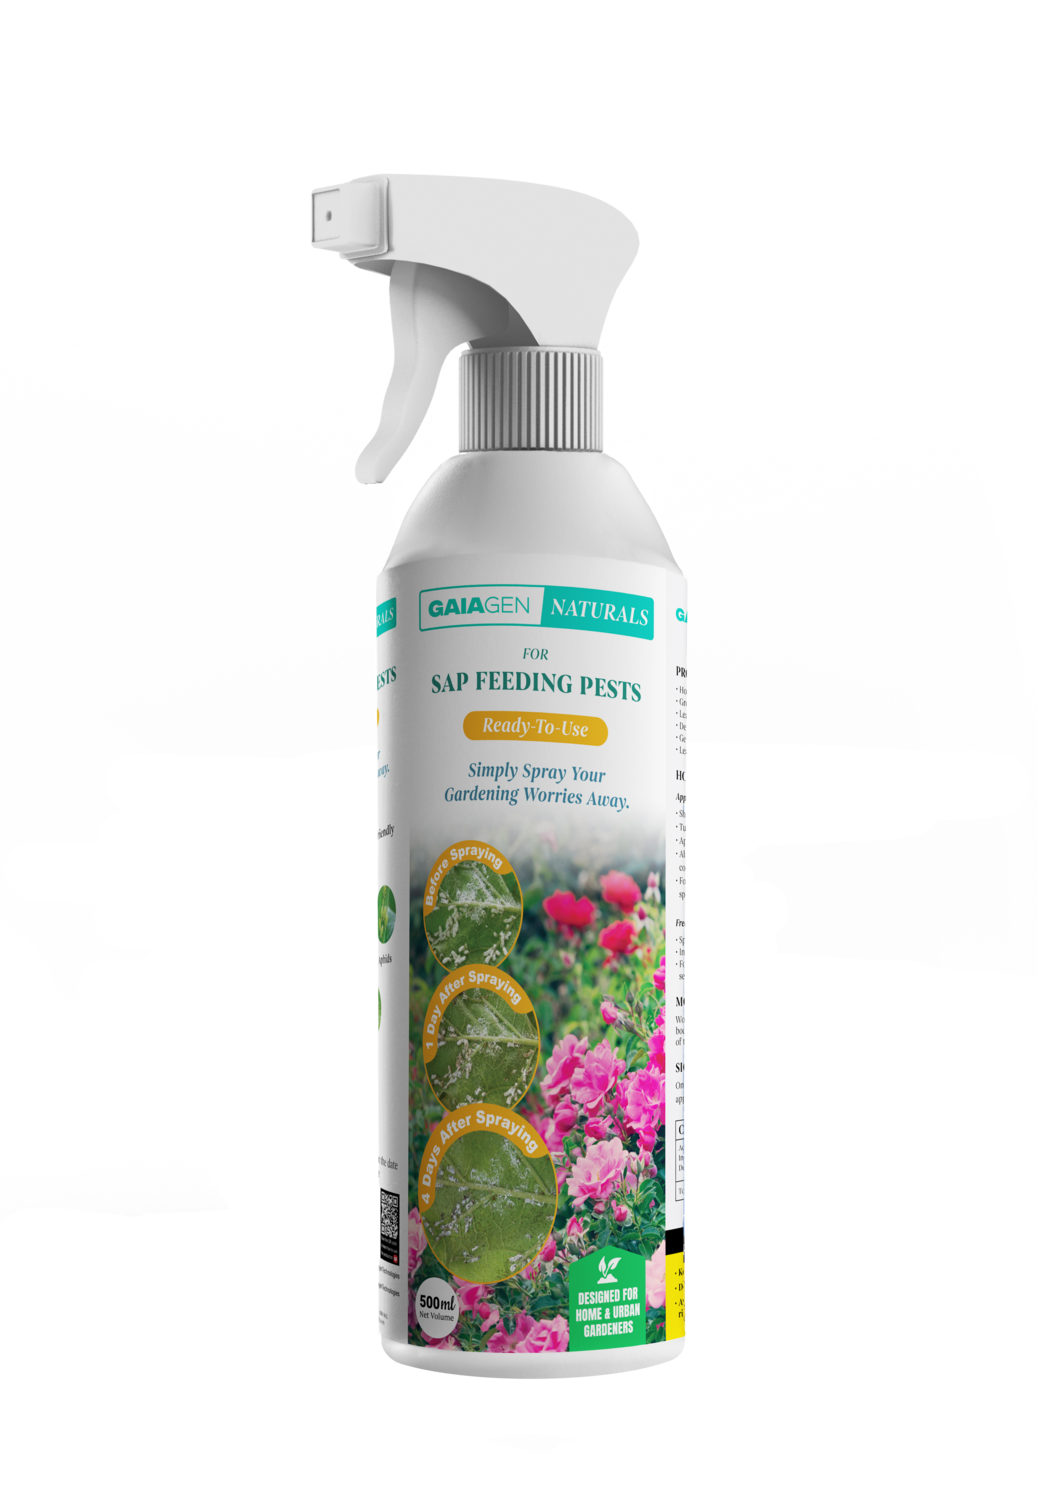 Gaiagen Naturals for Sap Feeding Pests (Ready-To-Use) | 500ml